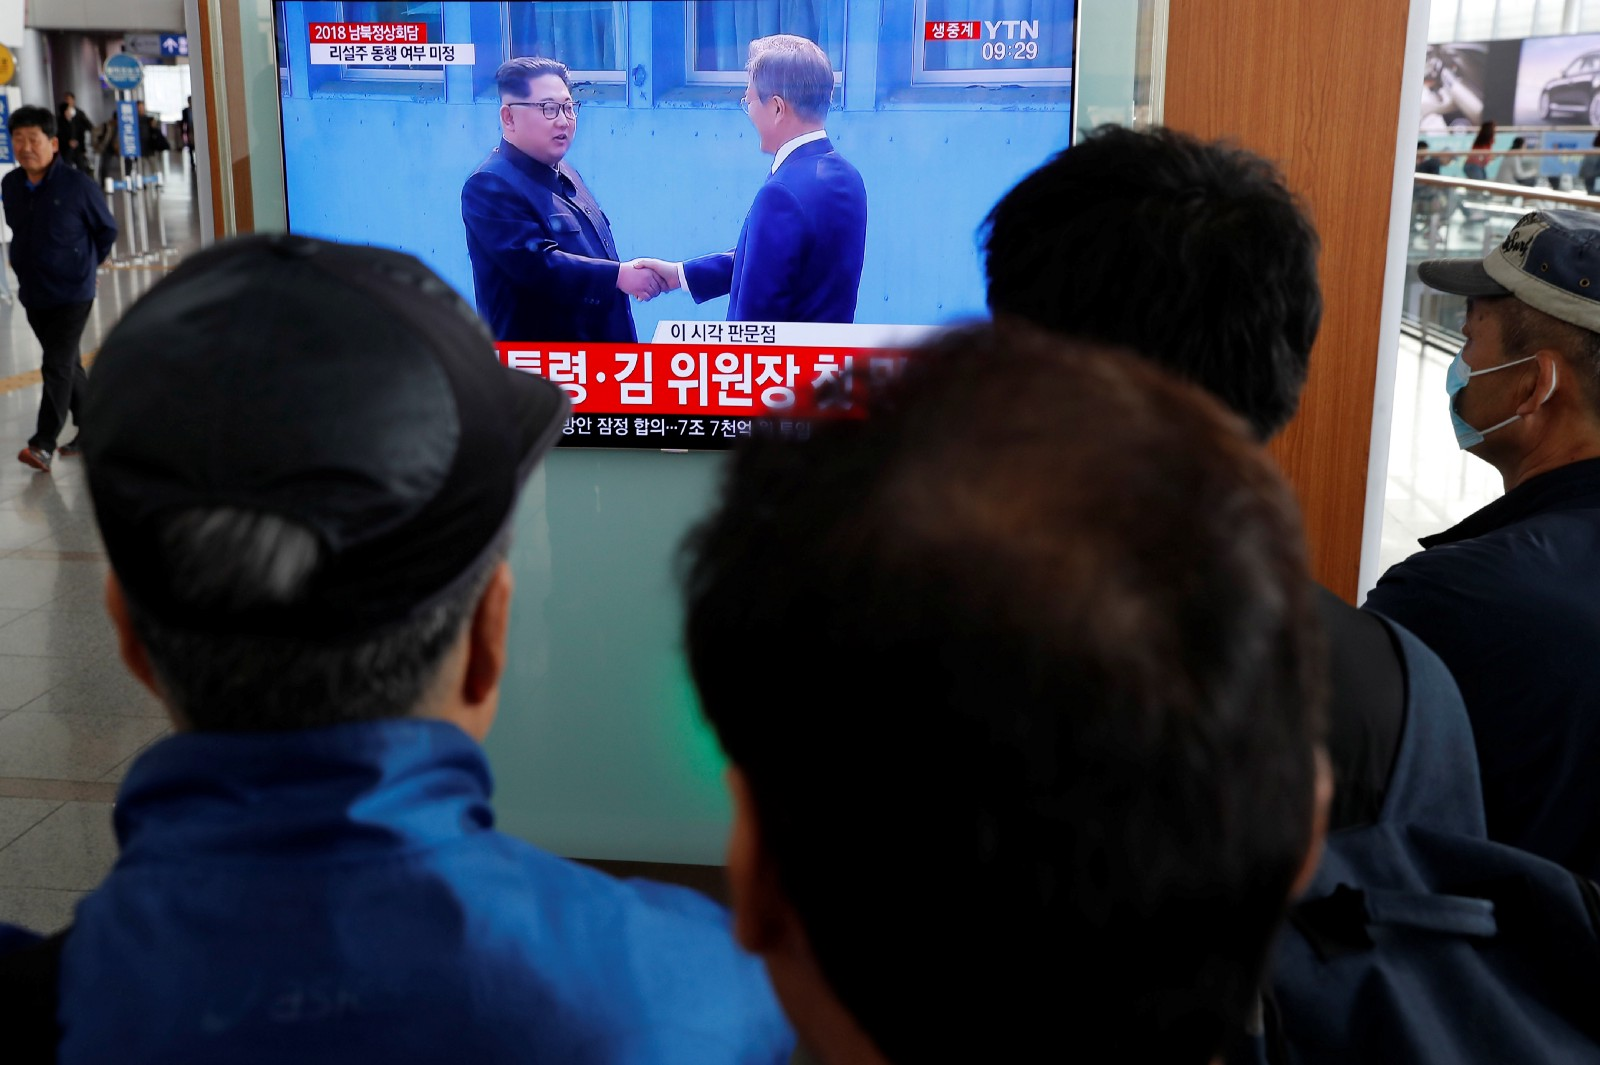 People watch a TV showing a live broadcast of the inter-Korean summit as  South Korean President Moon Jae-in shakes hands with North Korean leader  Kim ...